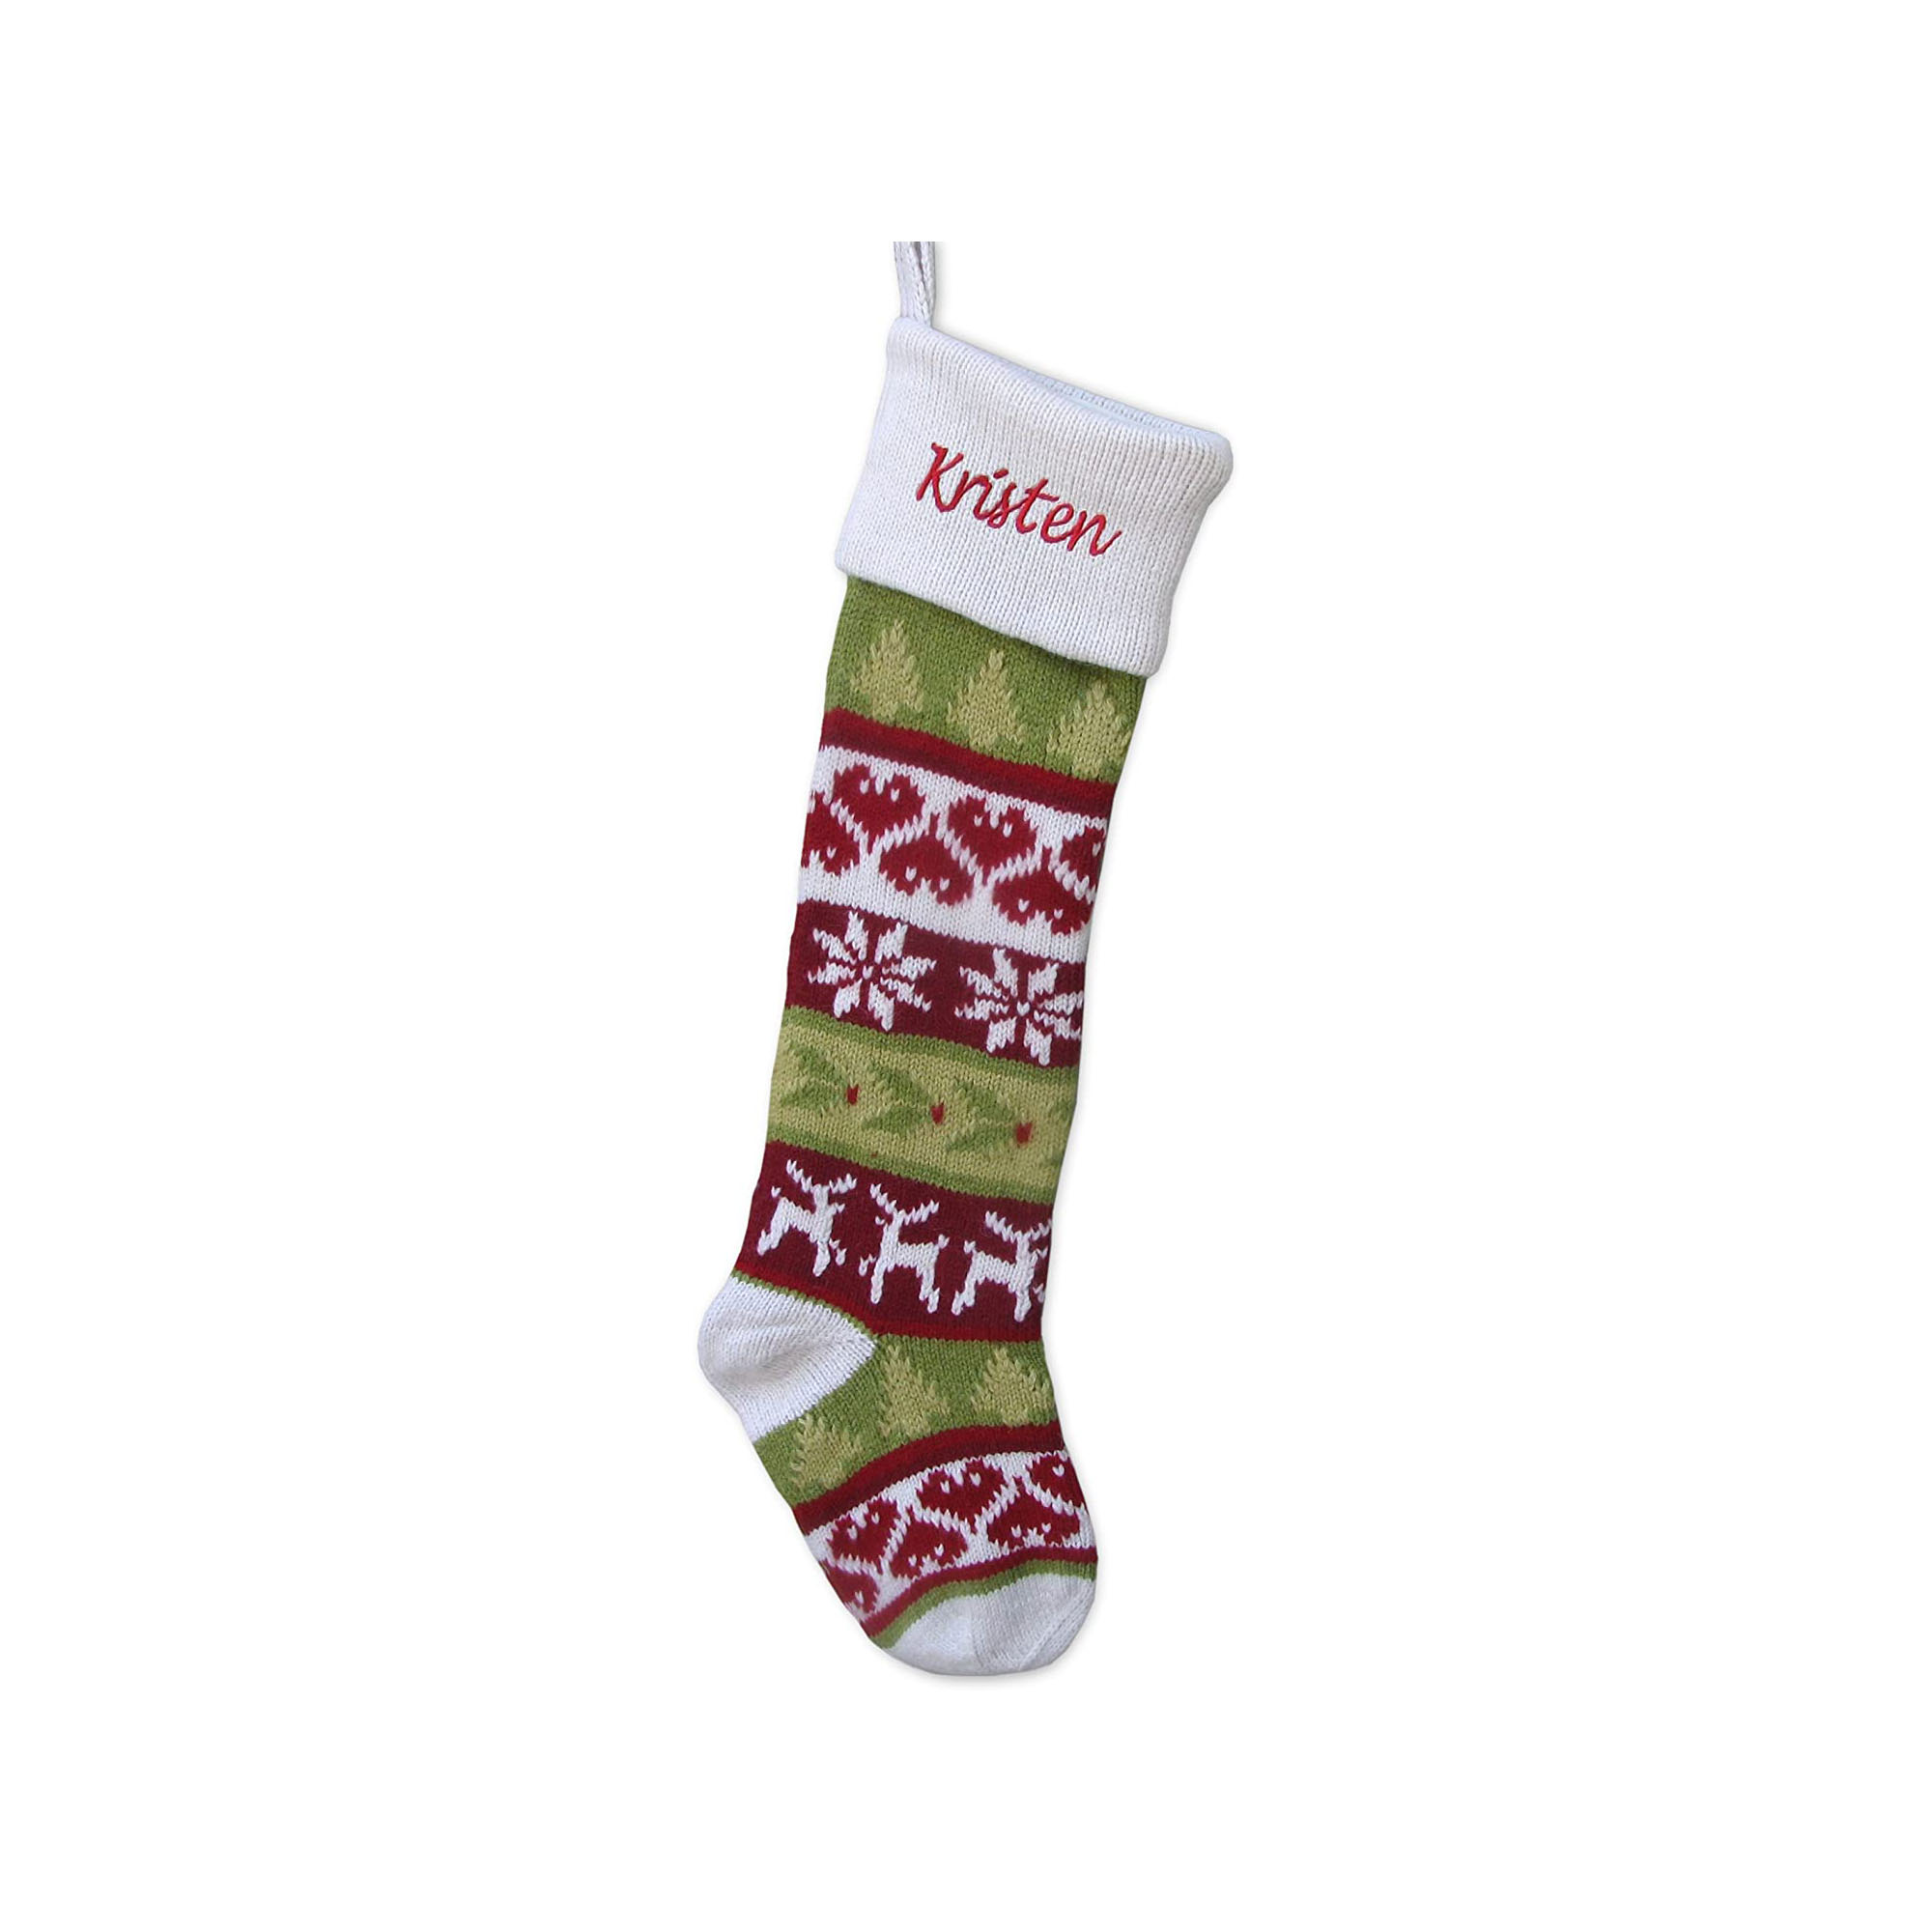 Knitted Personalized Christmas Stocking with White Cuff